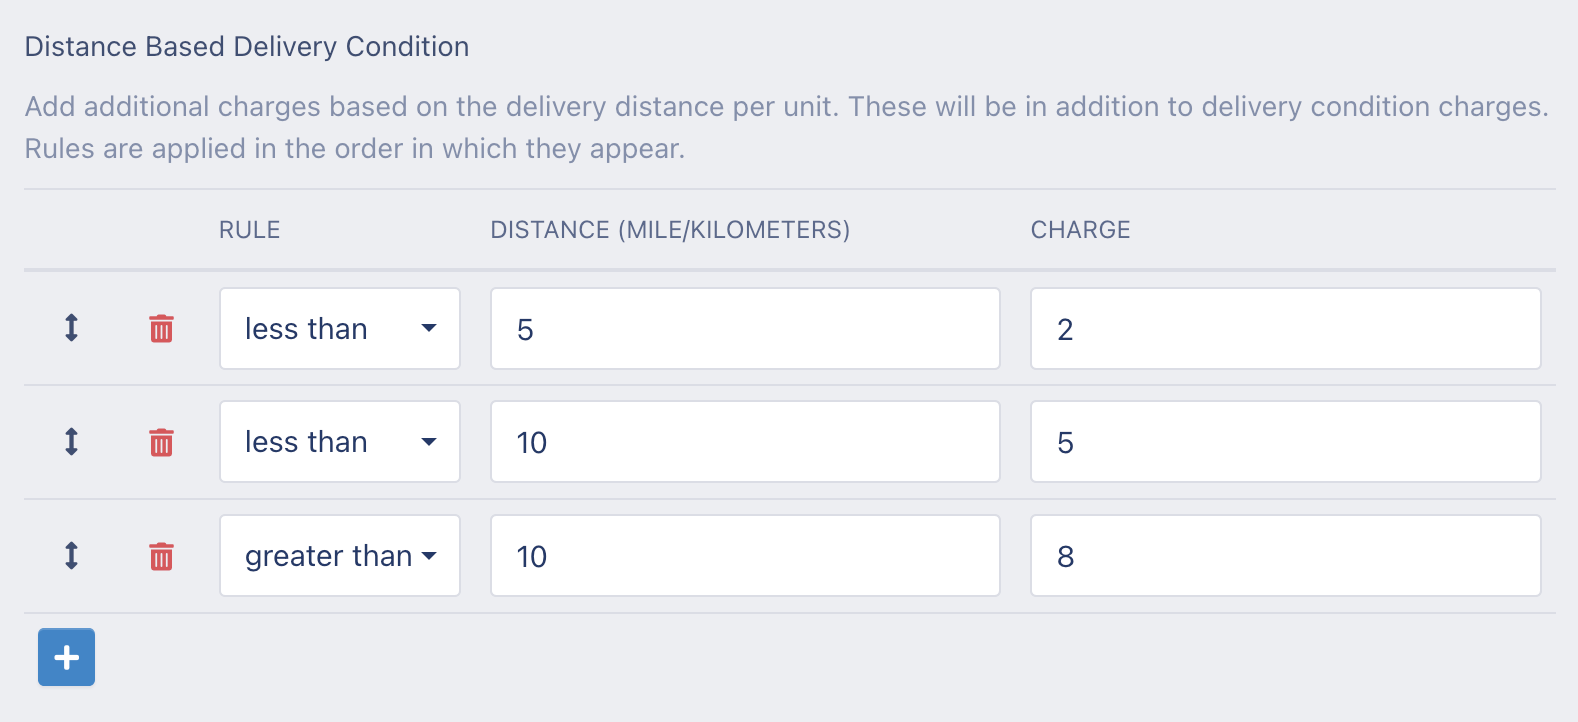 Distance based delivery condition